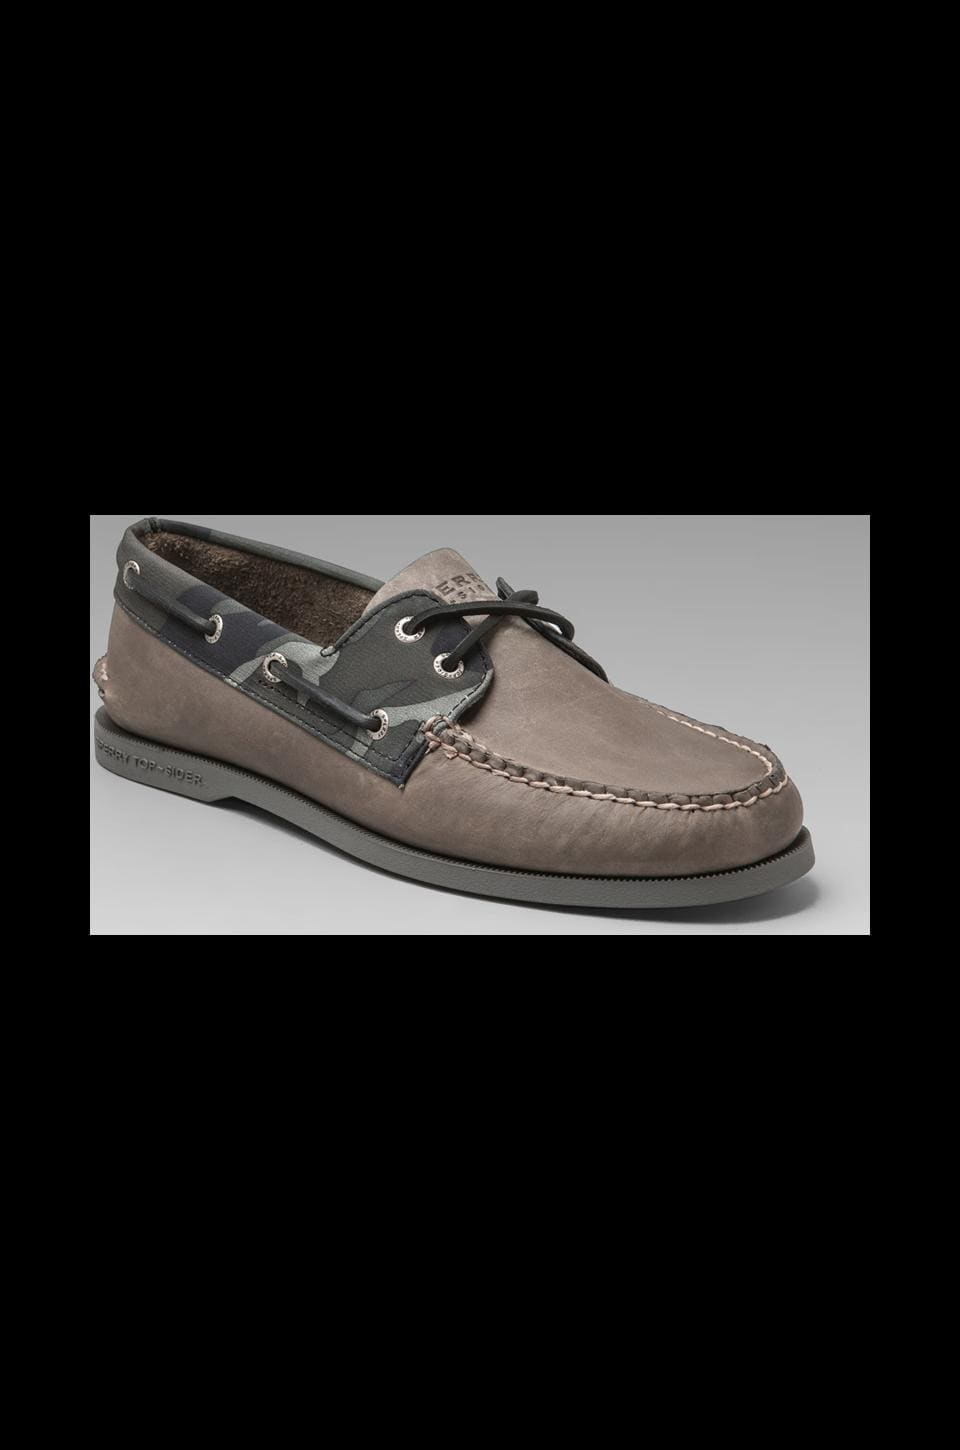 Sperry Top-Sider A/O 2-Eye in Grey/Camo